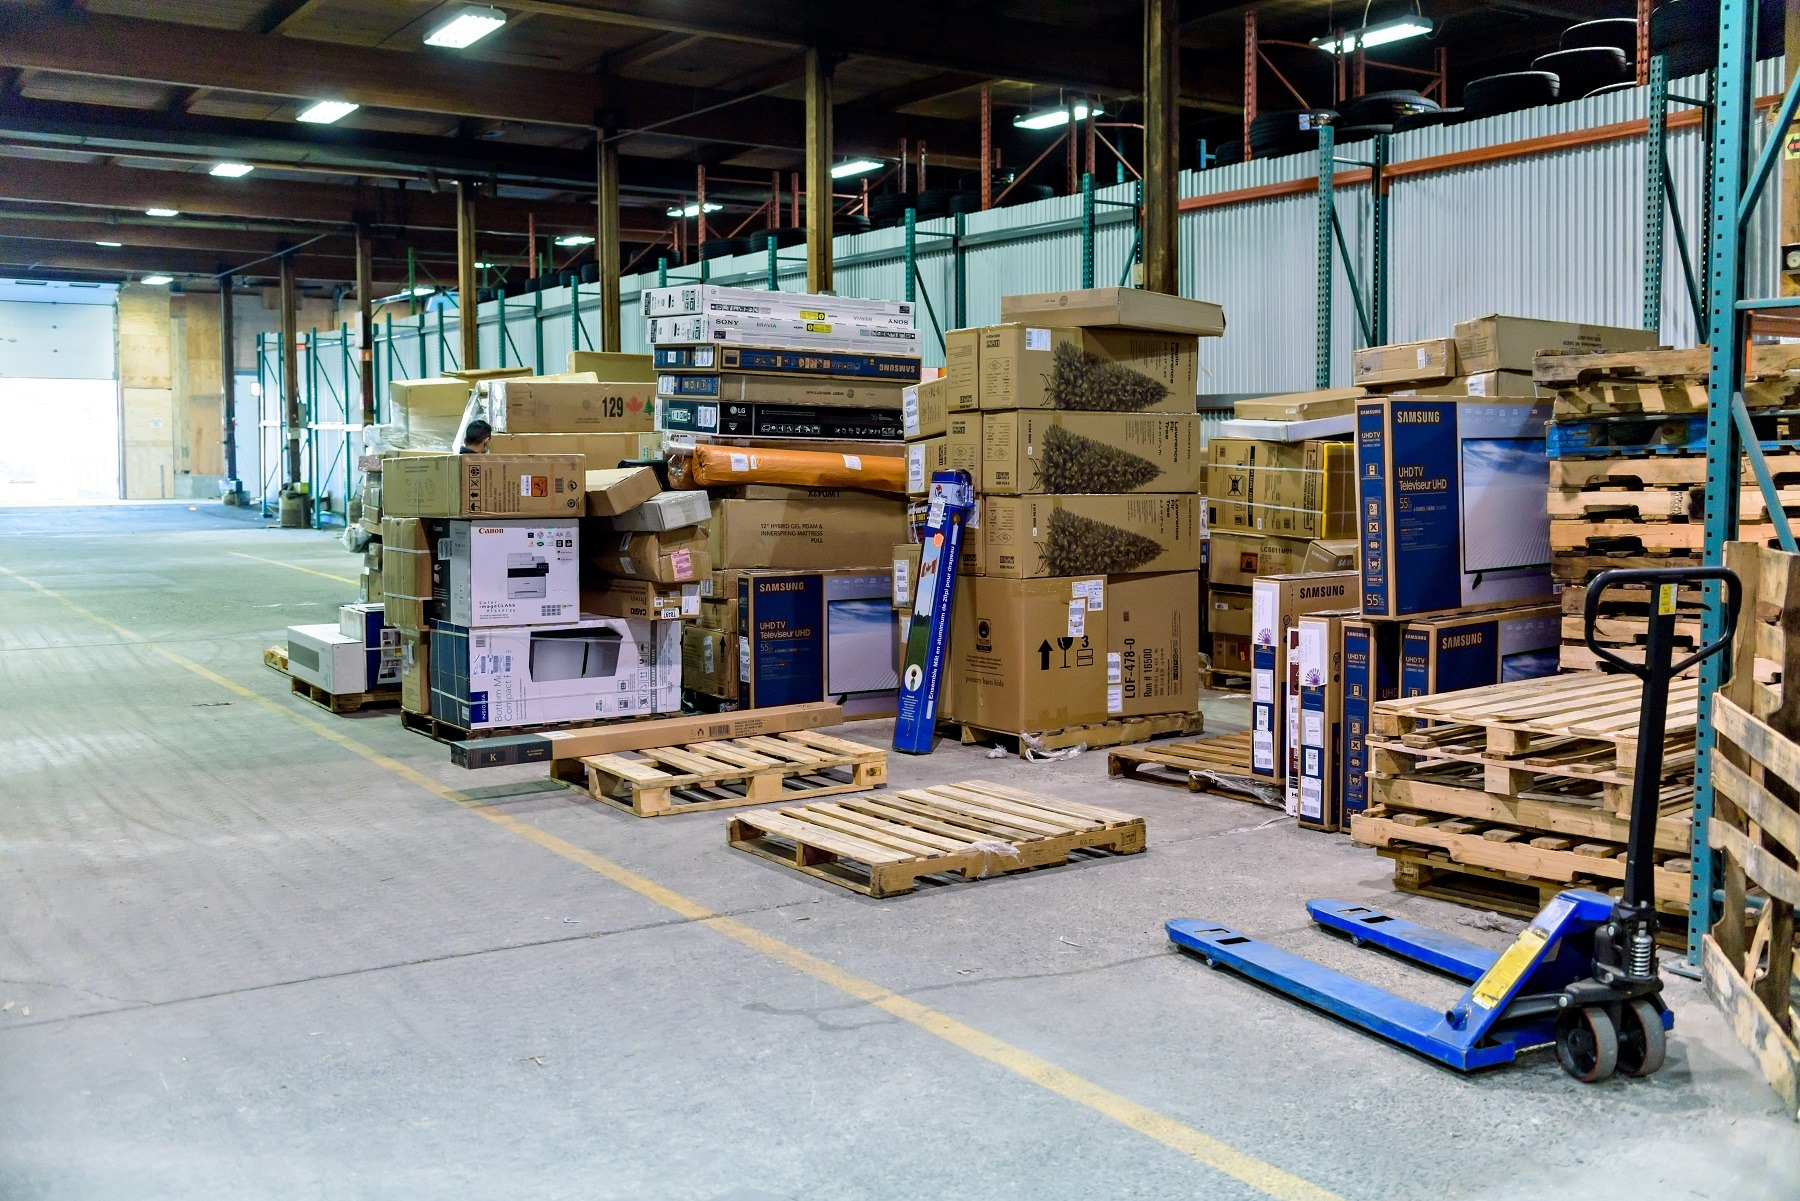 surrey warehouse storage